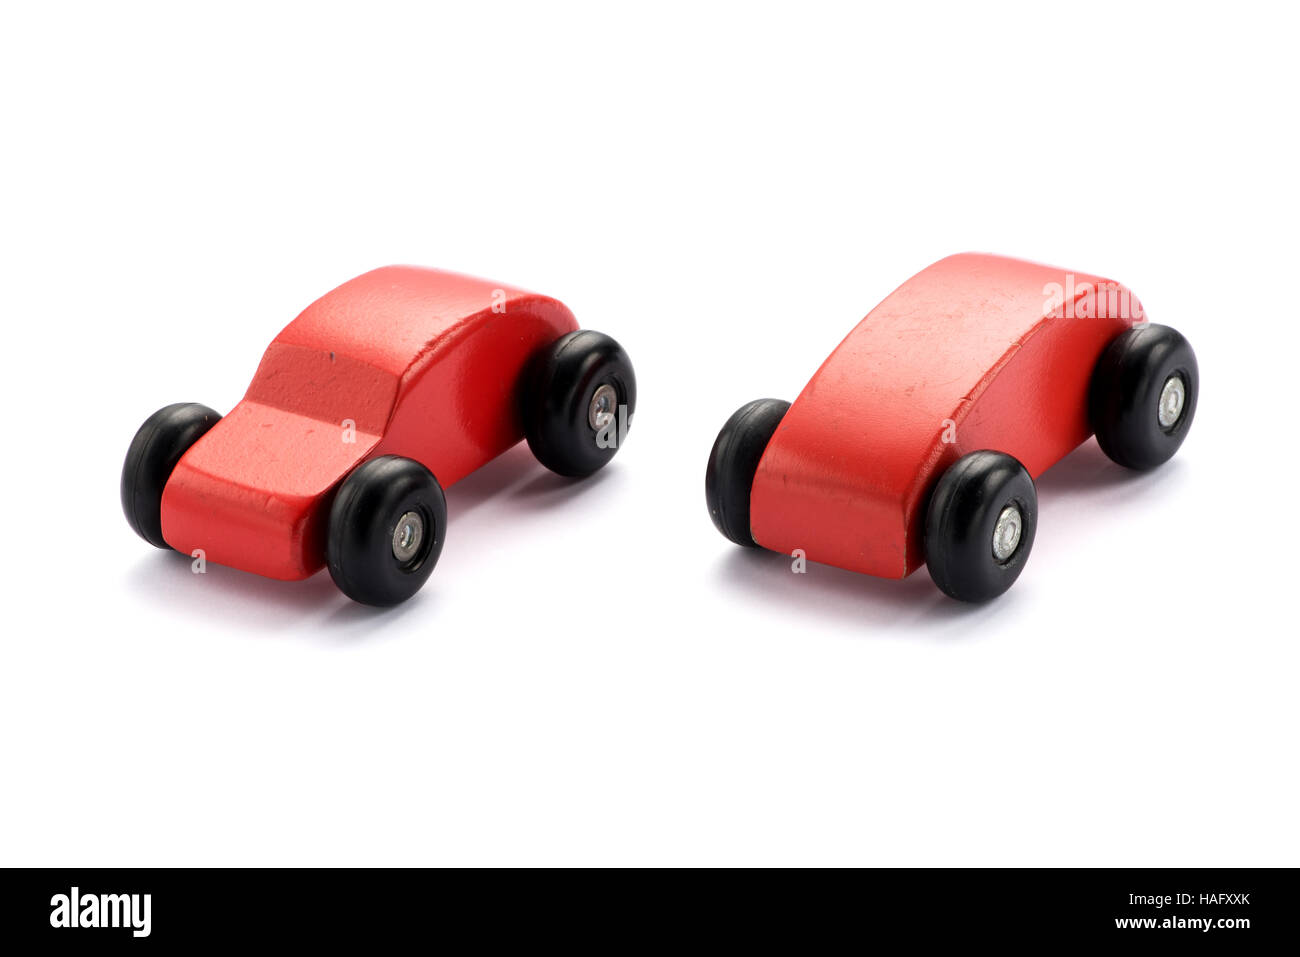 Two different stylized wooden toy cars for kids - Stock Image